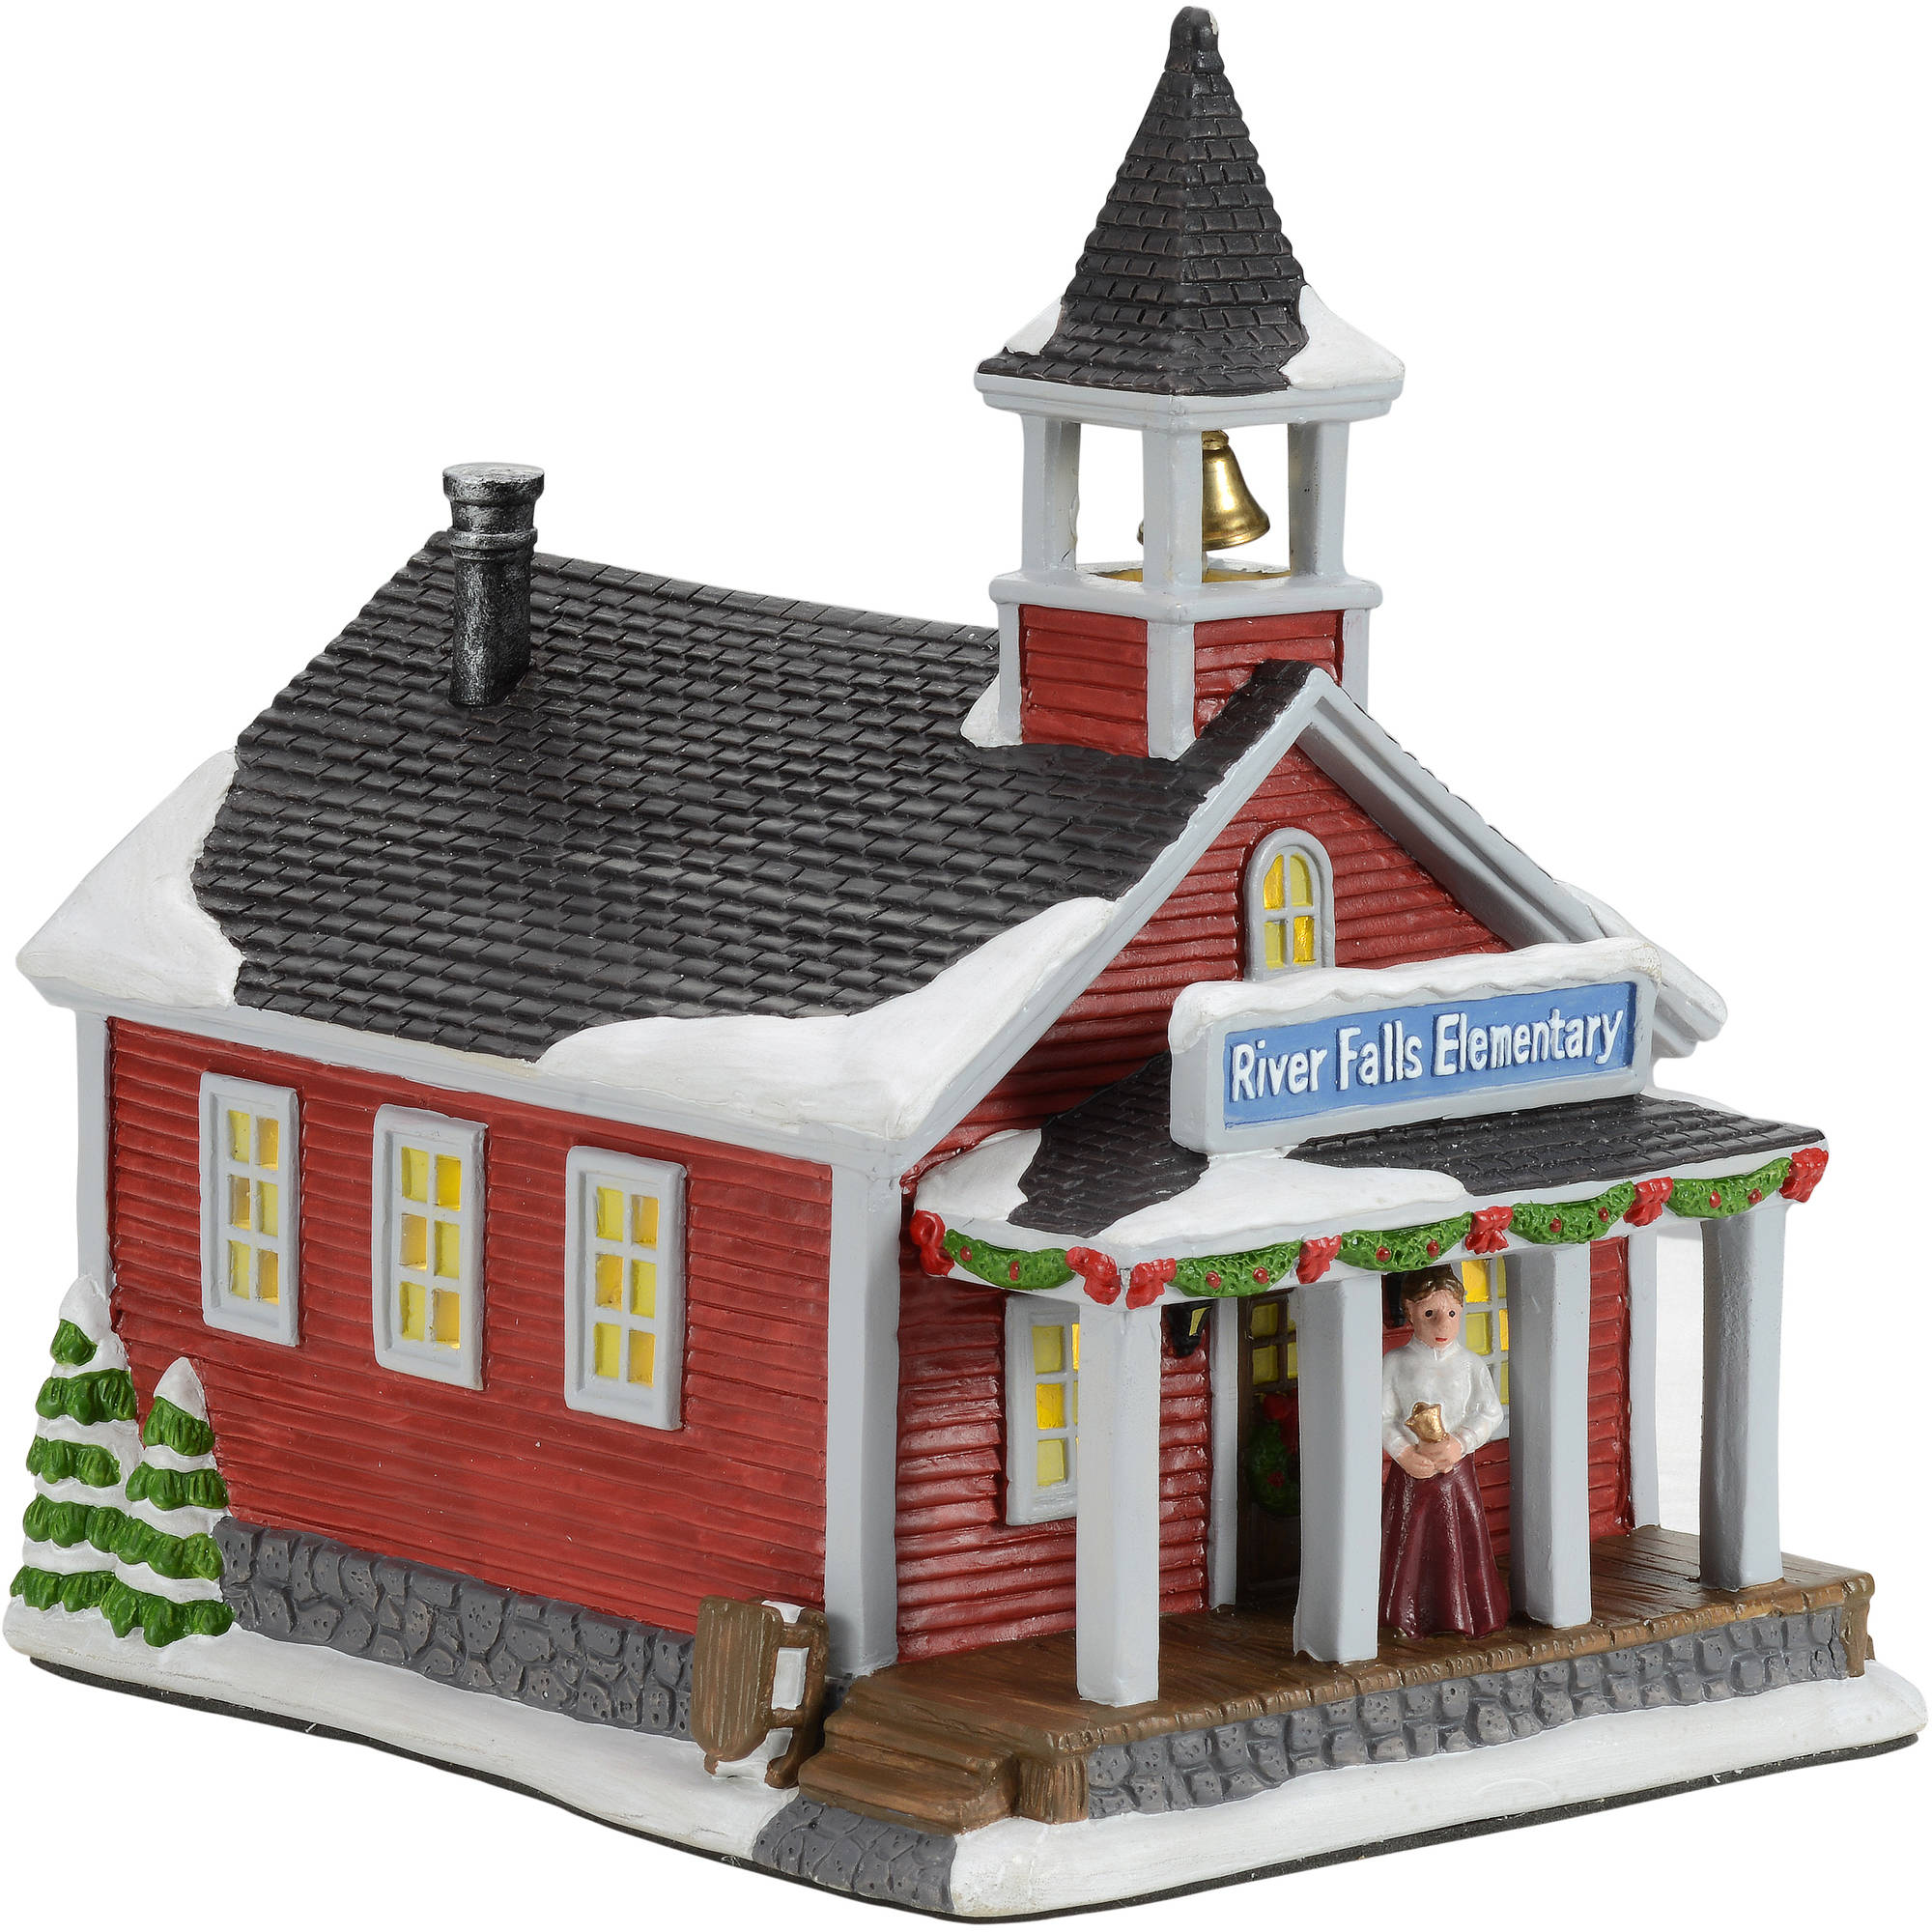 Christmas Village Houses.Holiday Time 8 5 Olde School House Christmas Village